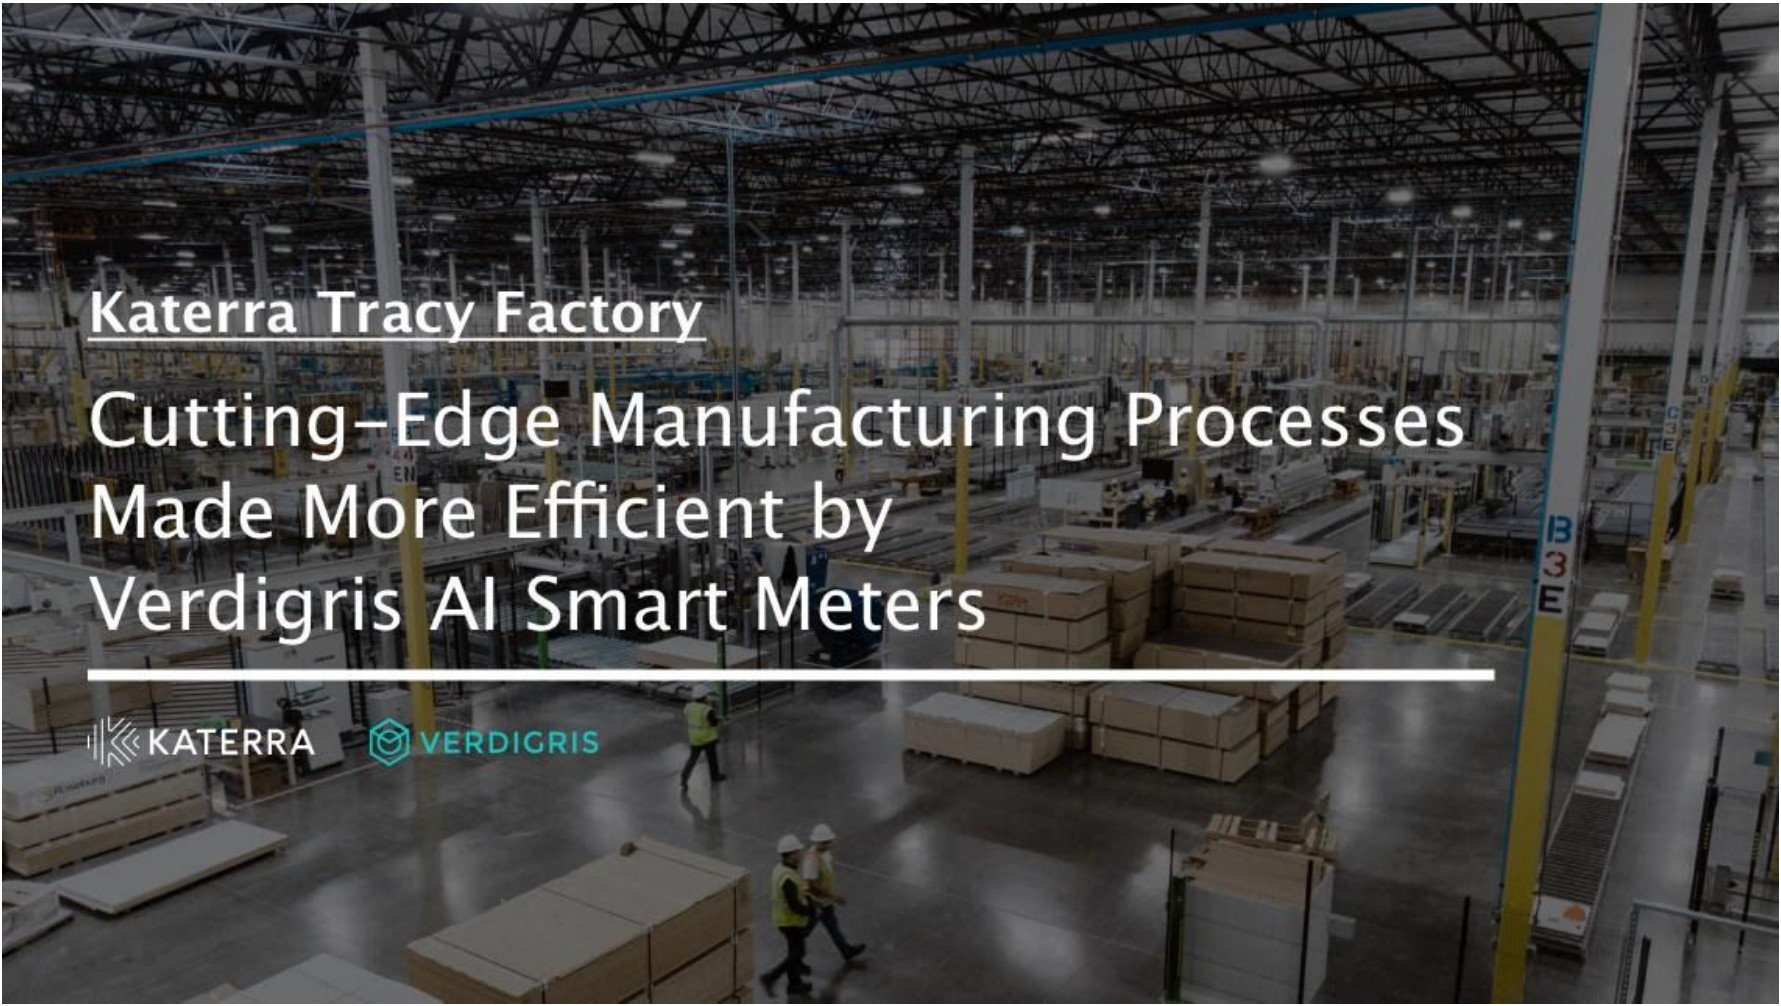 Katerra's Cutting-Edge Manufacturing Processes Made More Efficient by Verdigris AI Smart Meters